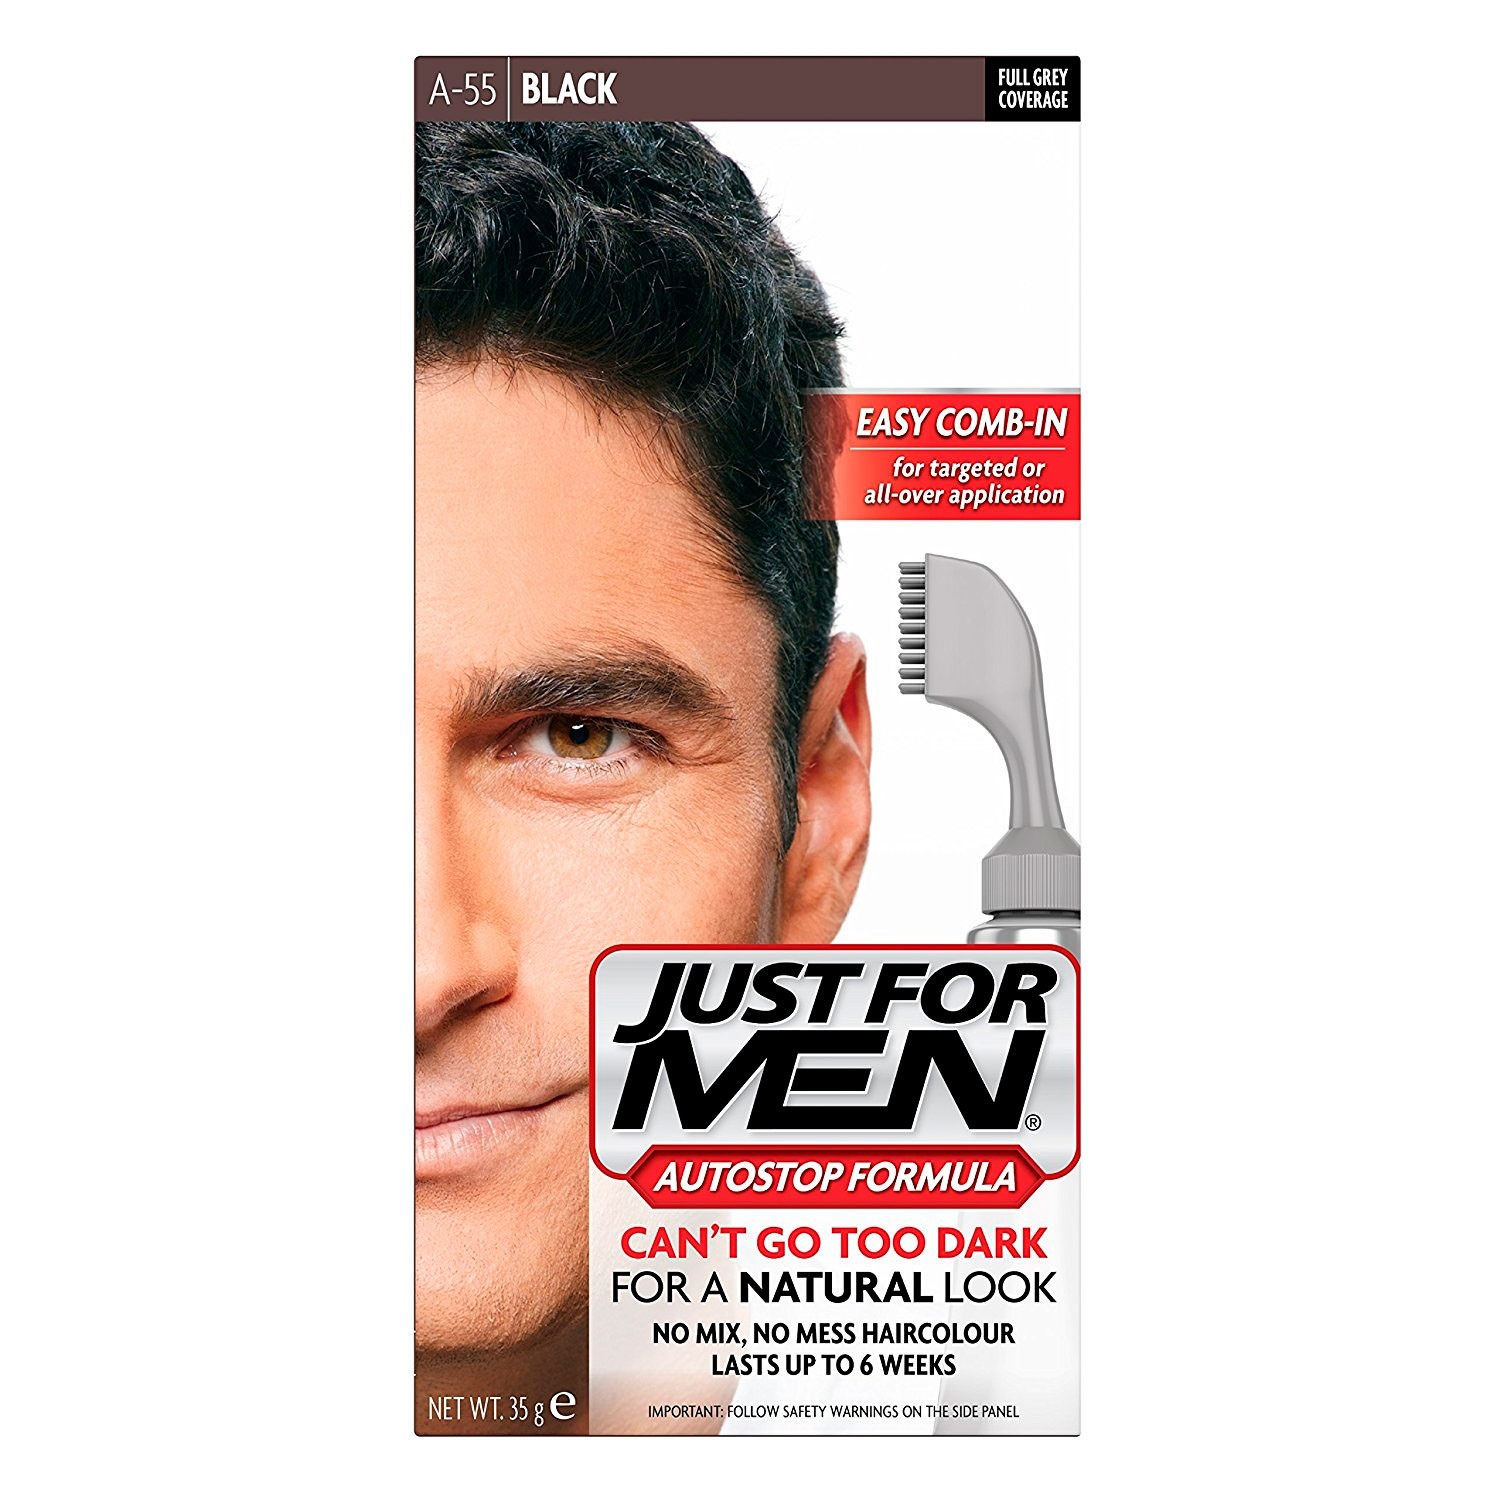 Just For Men Ultra The Gentle Haircolor Real Black A-55